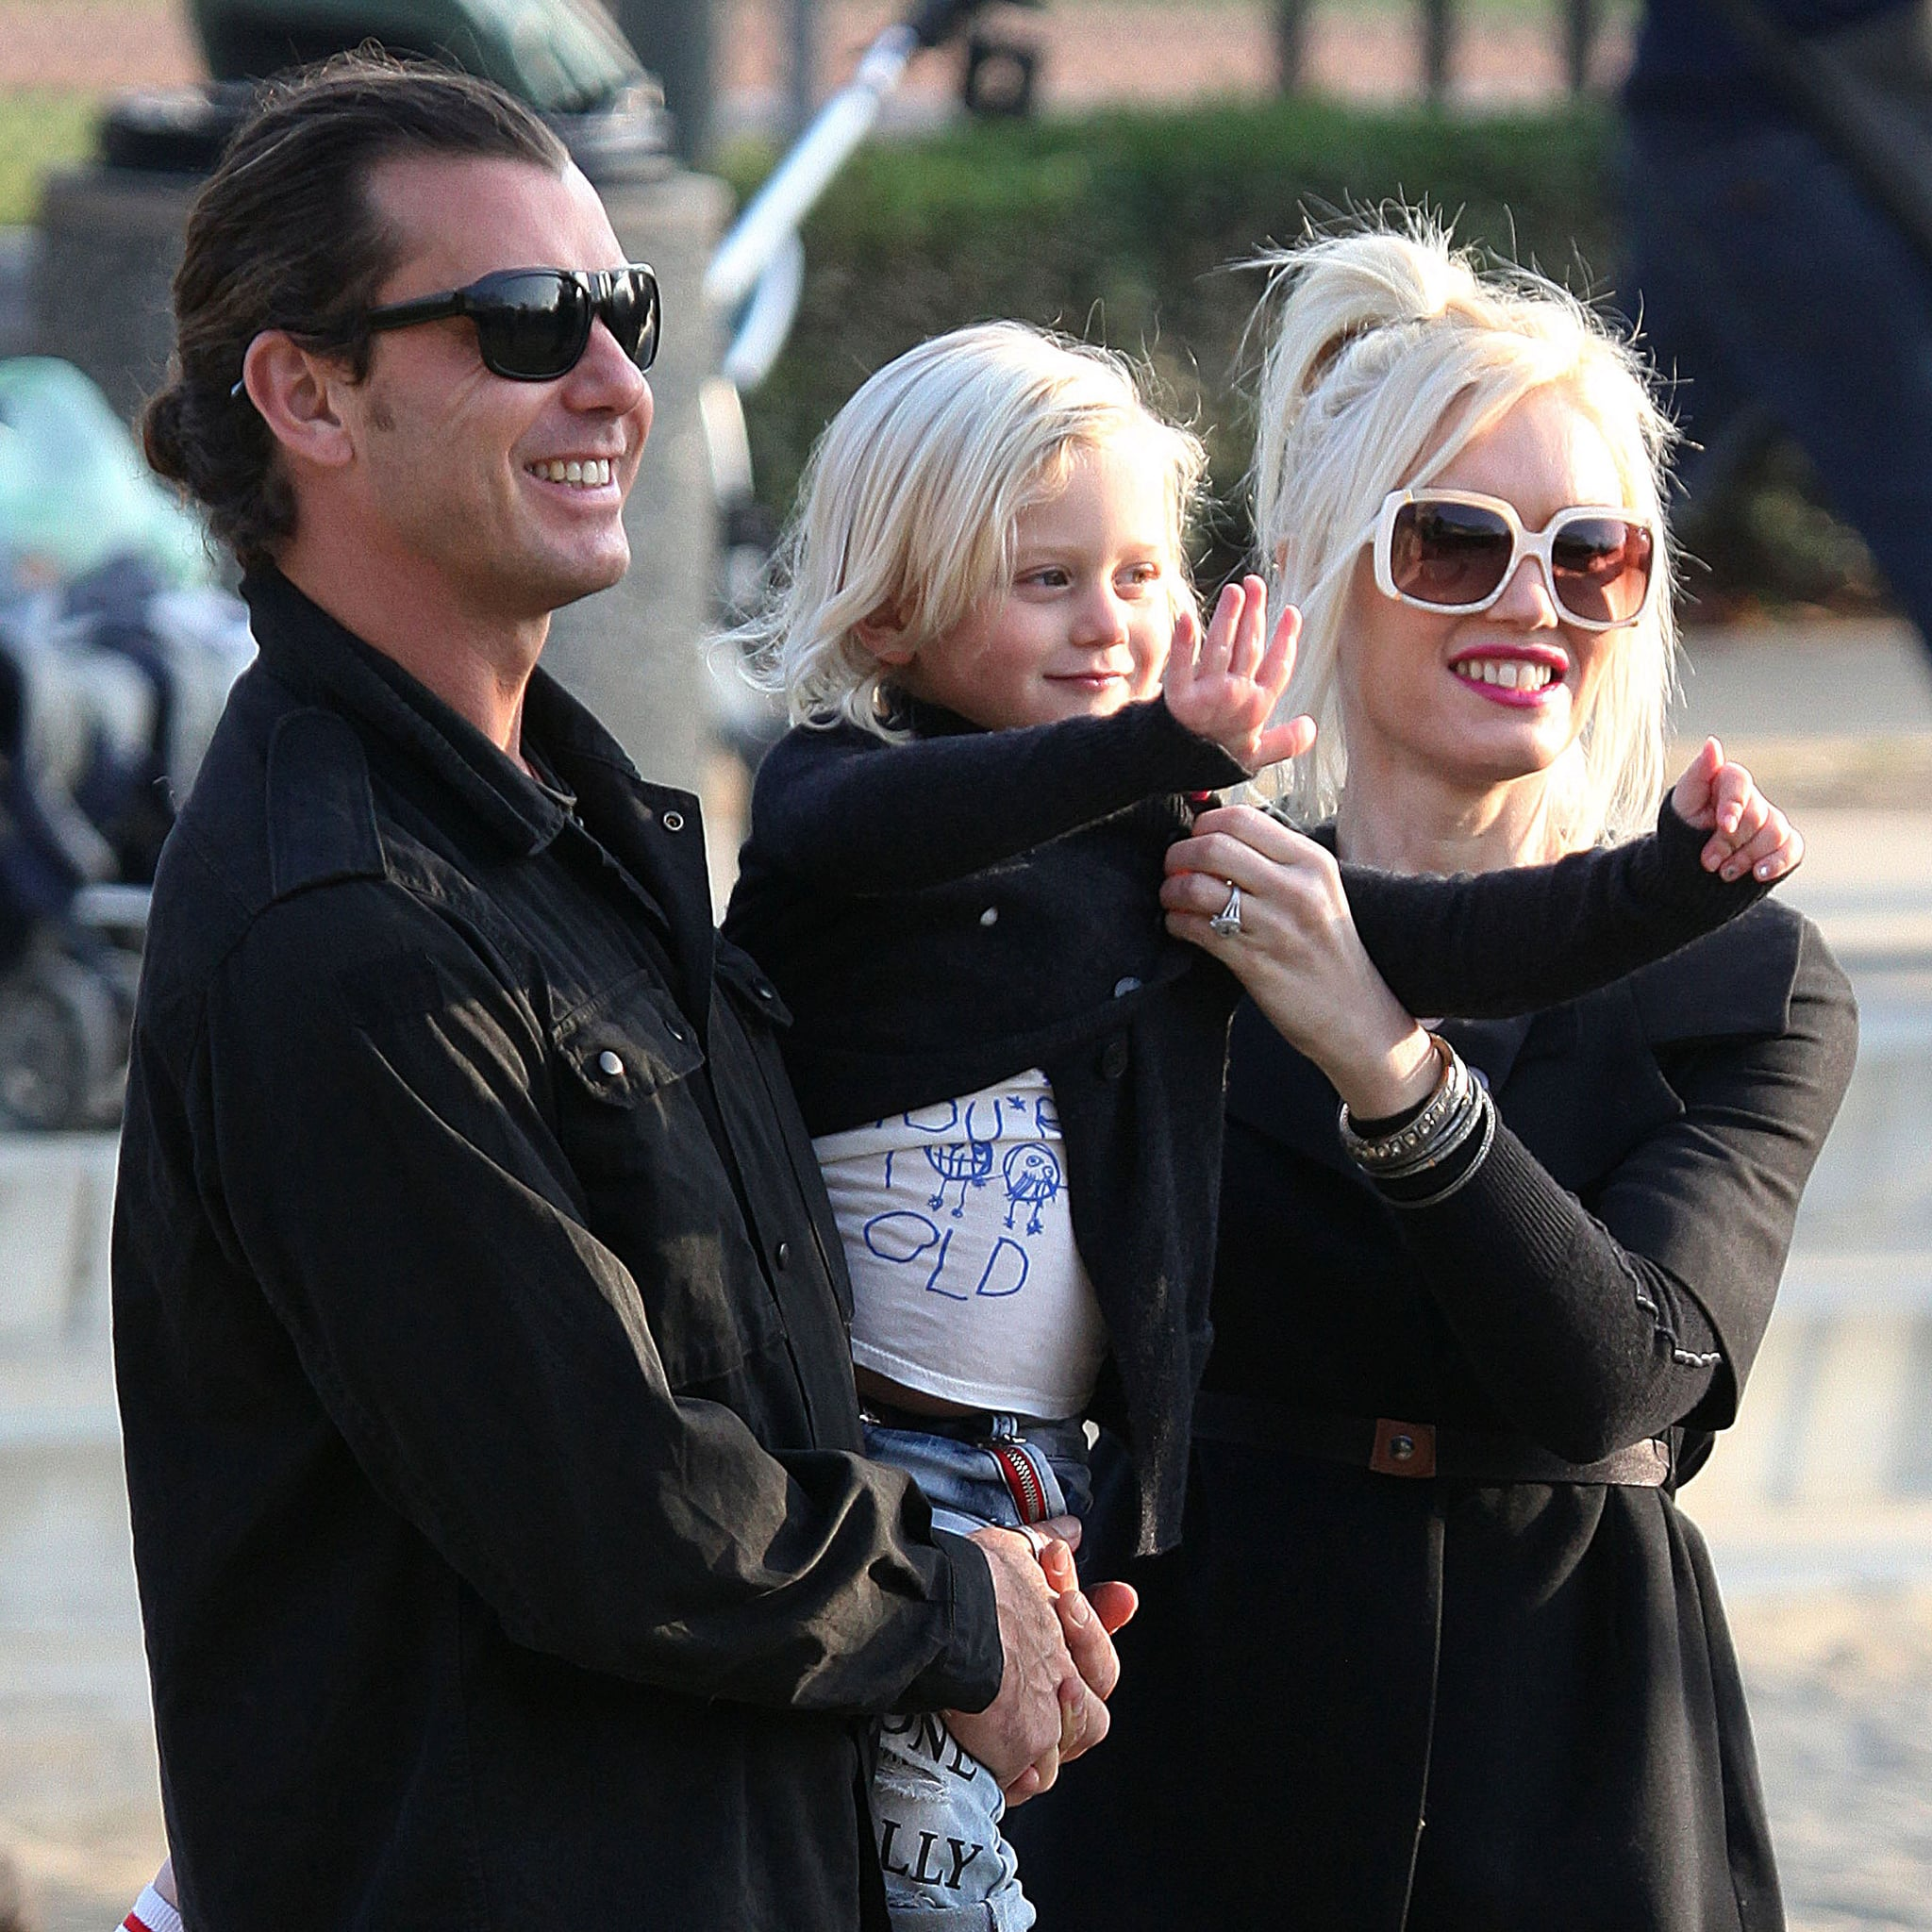 313c0355b0fb Gwen Stefani and Gavin Rossdale PDA Pictures